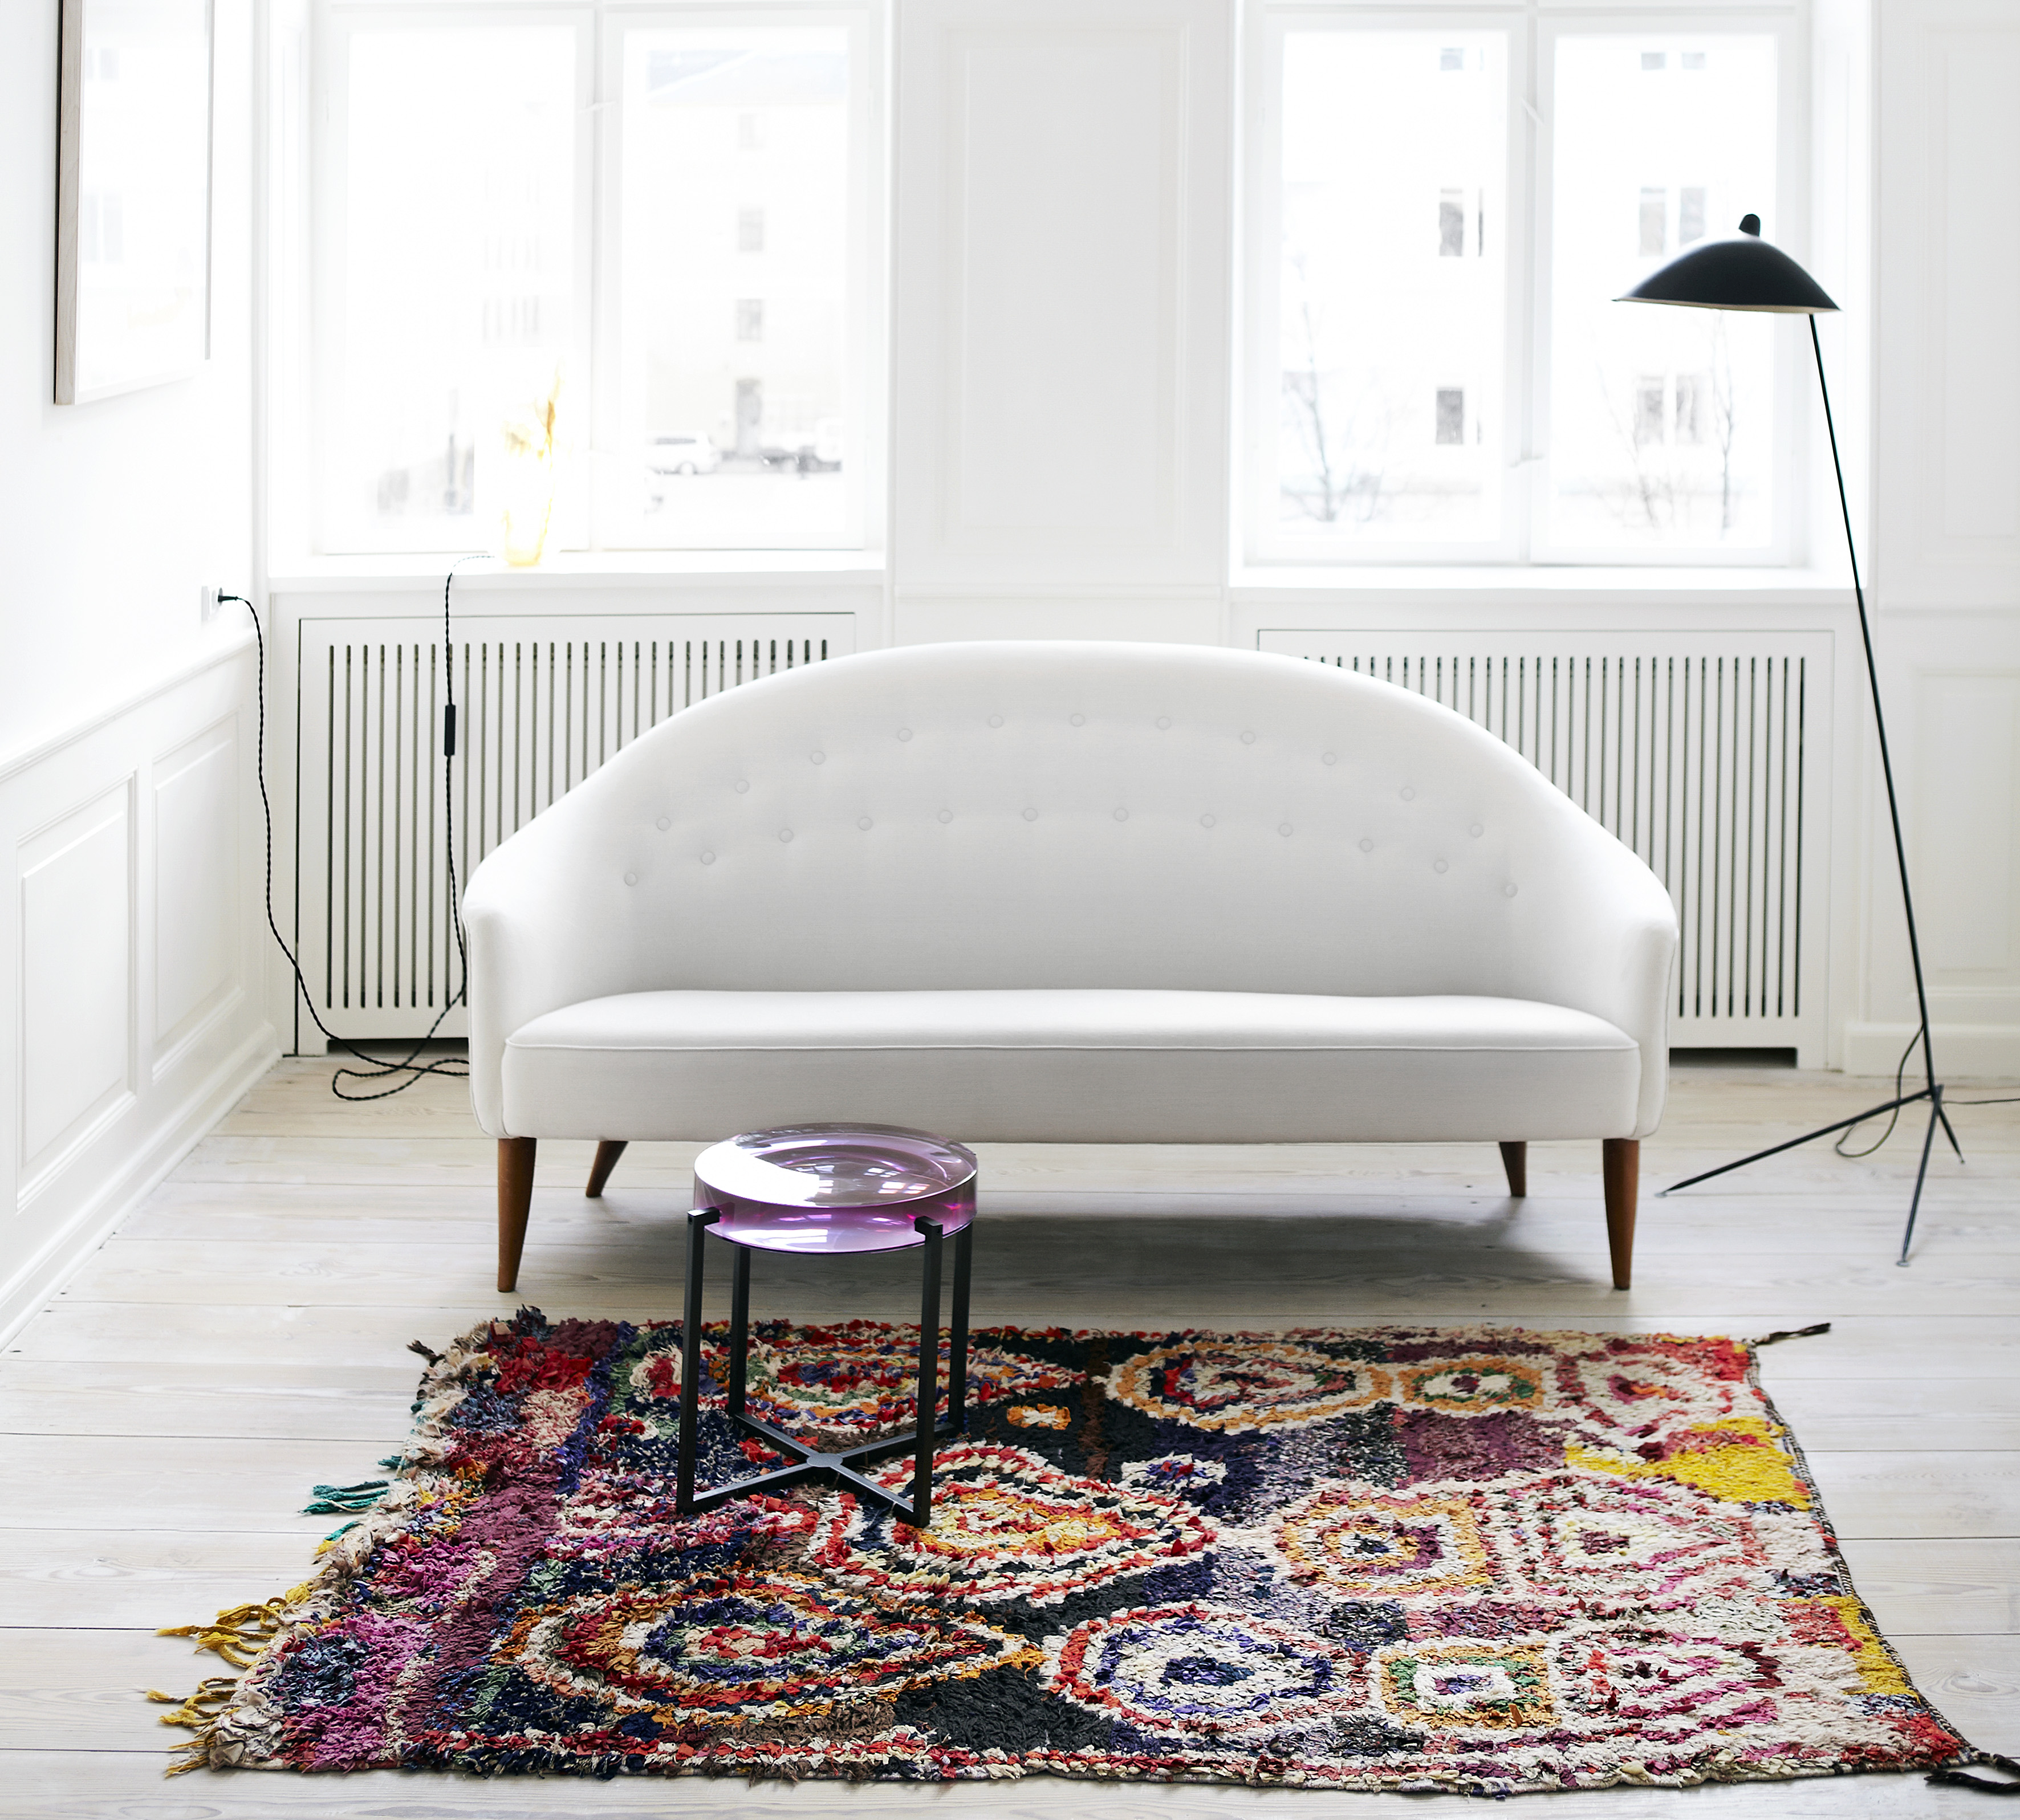 The Apartment by Tina Seidenfaden Busck and Pernille Hornhaver